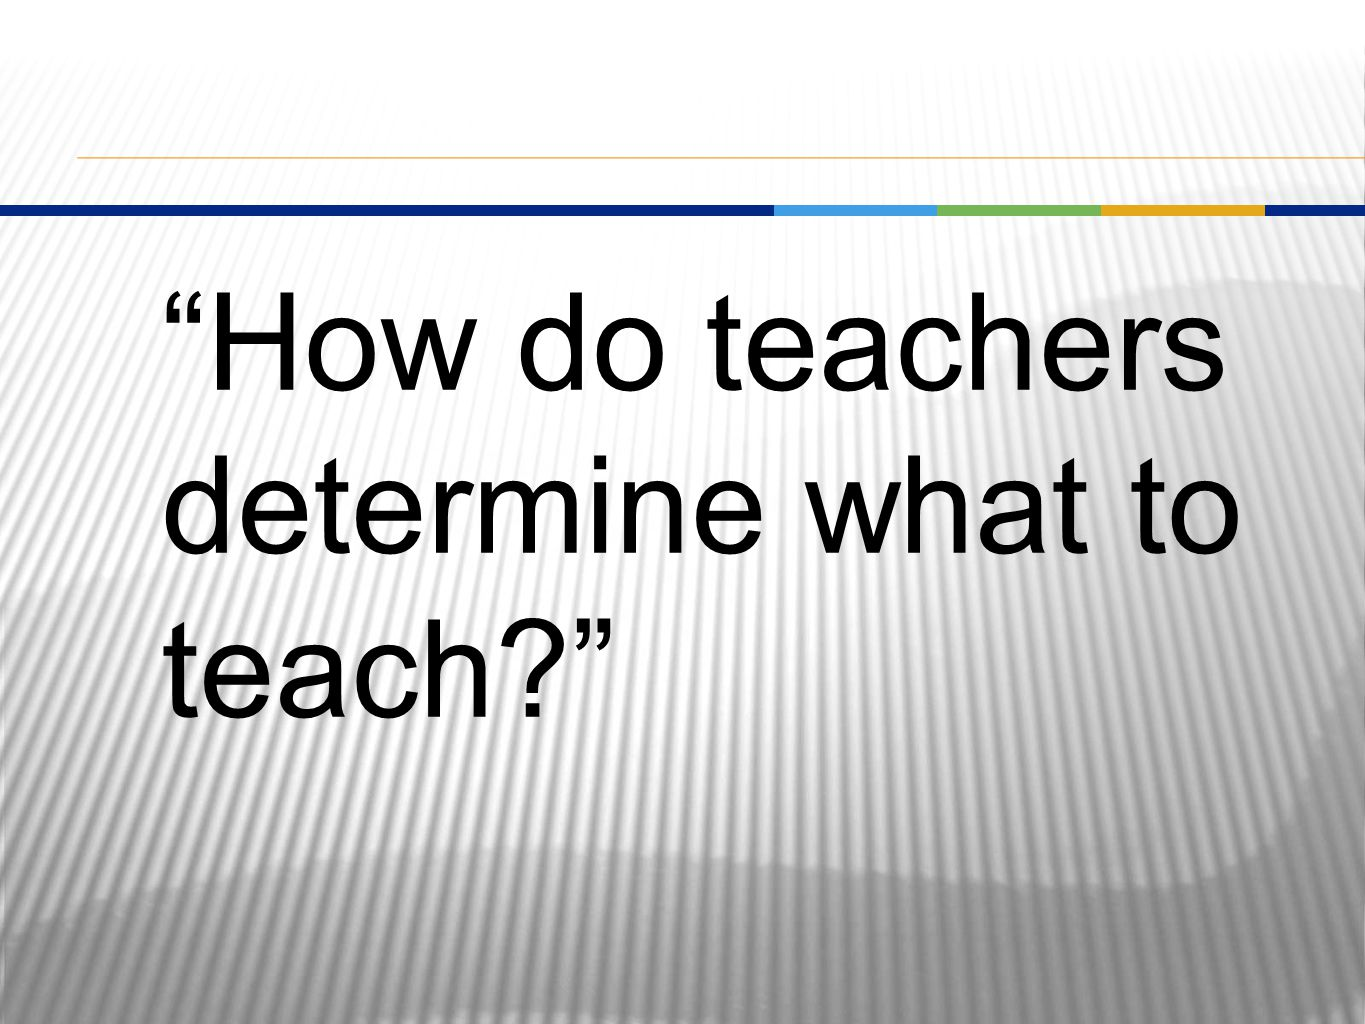 How do teachers determine what to teach